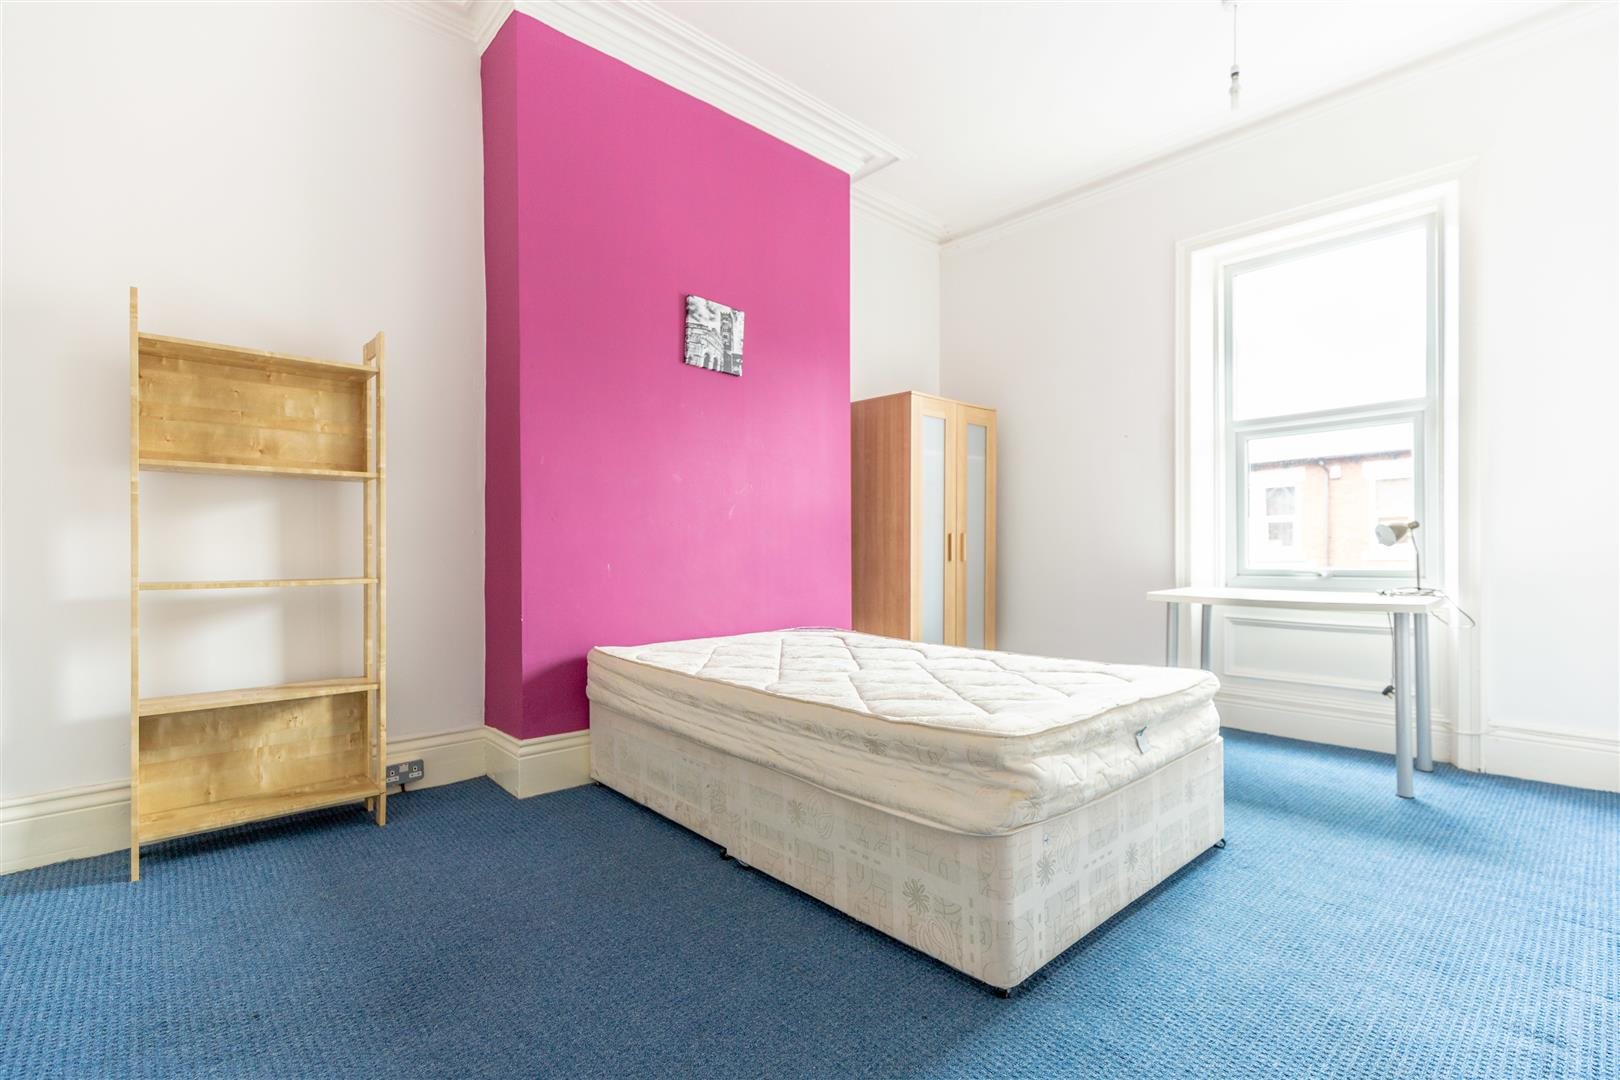 6 bed terraced house to rent in Newcastle Upon Tyne, NE6 5LR  - Property Image 12